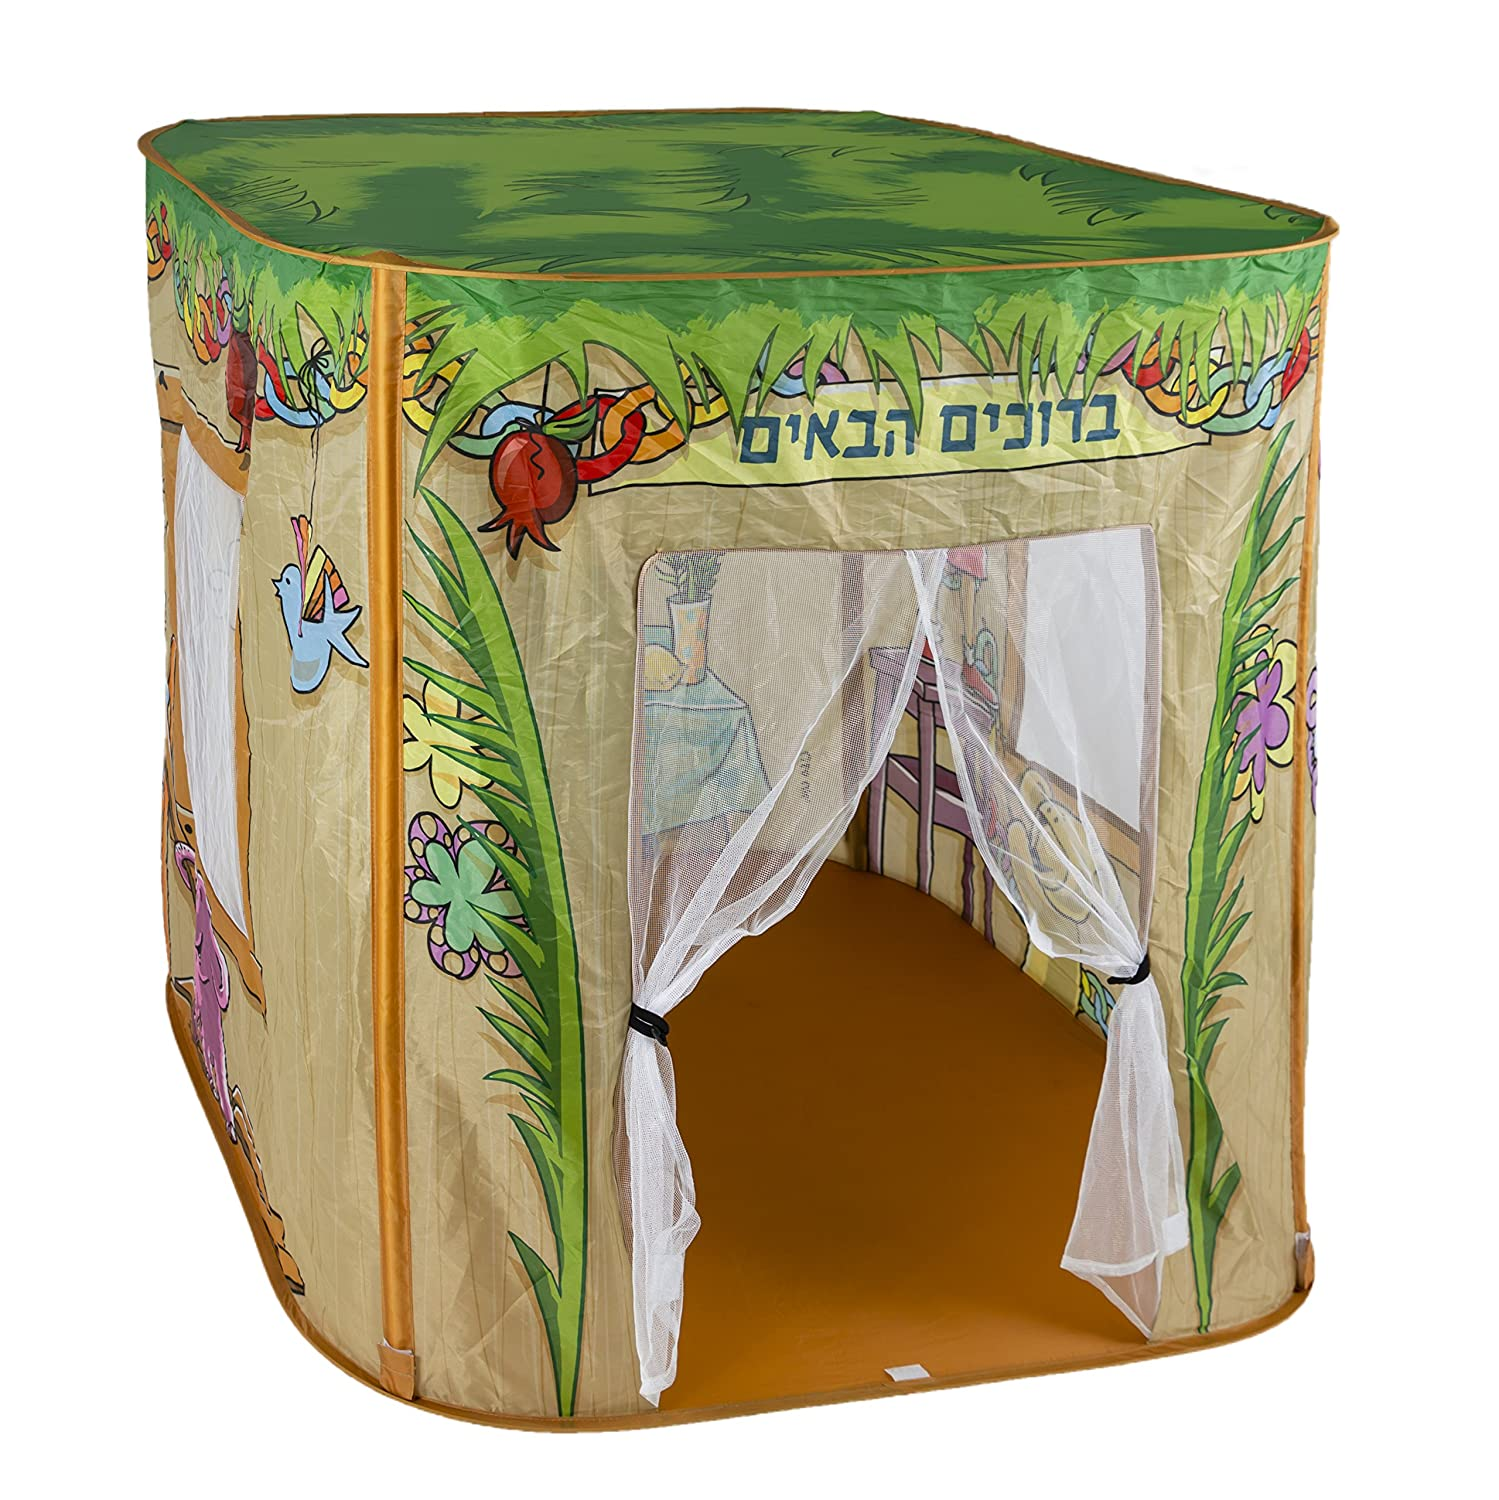 Pop Up Sukkah for Kids, Mitos Children Sukkah is an Easy Foldable Pop Up Tent/House Toy for Kids with Fun Kids Sukkah Decorations and Holiday Inspired Illustrations | for Ages 3-12 Mitos Creations